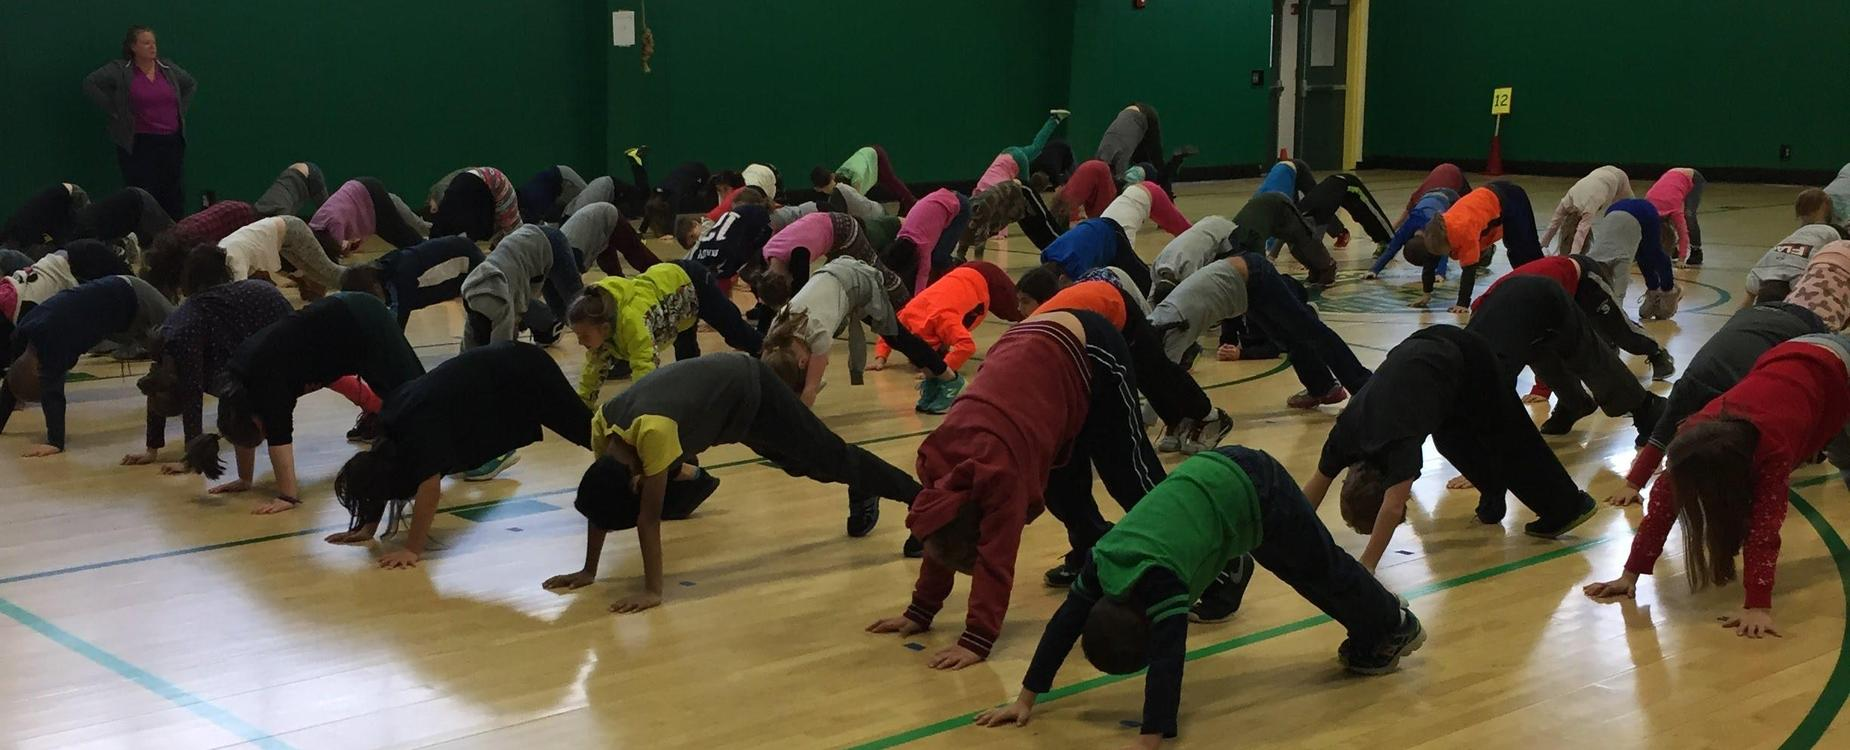 Students in the Downward Dog Yoga Pose